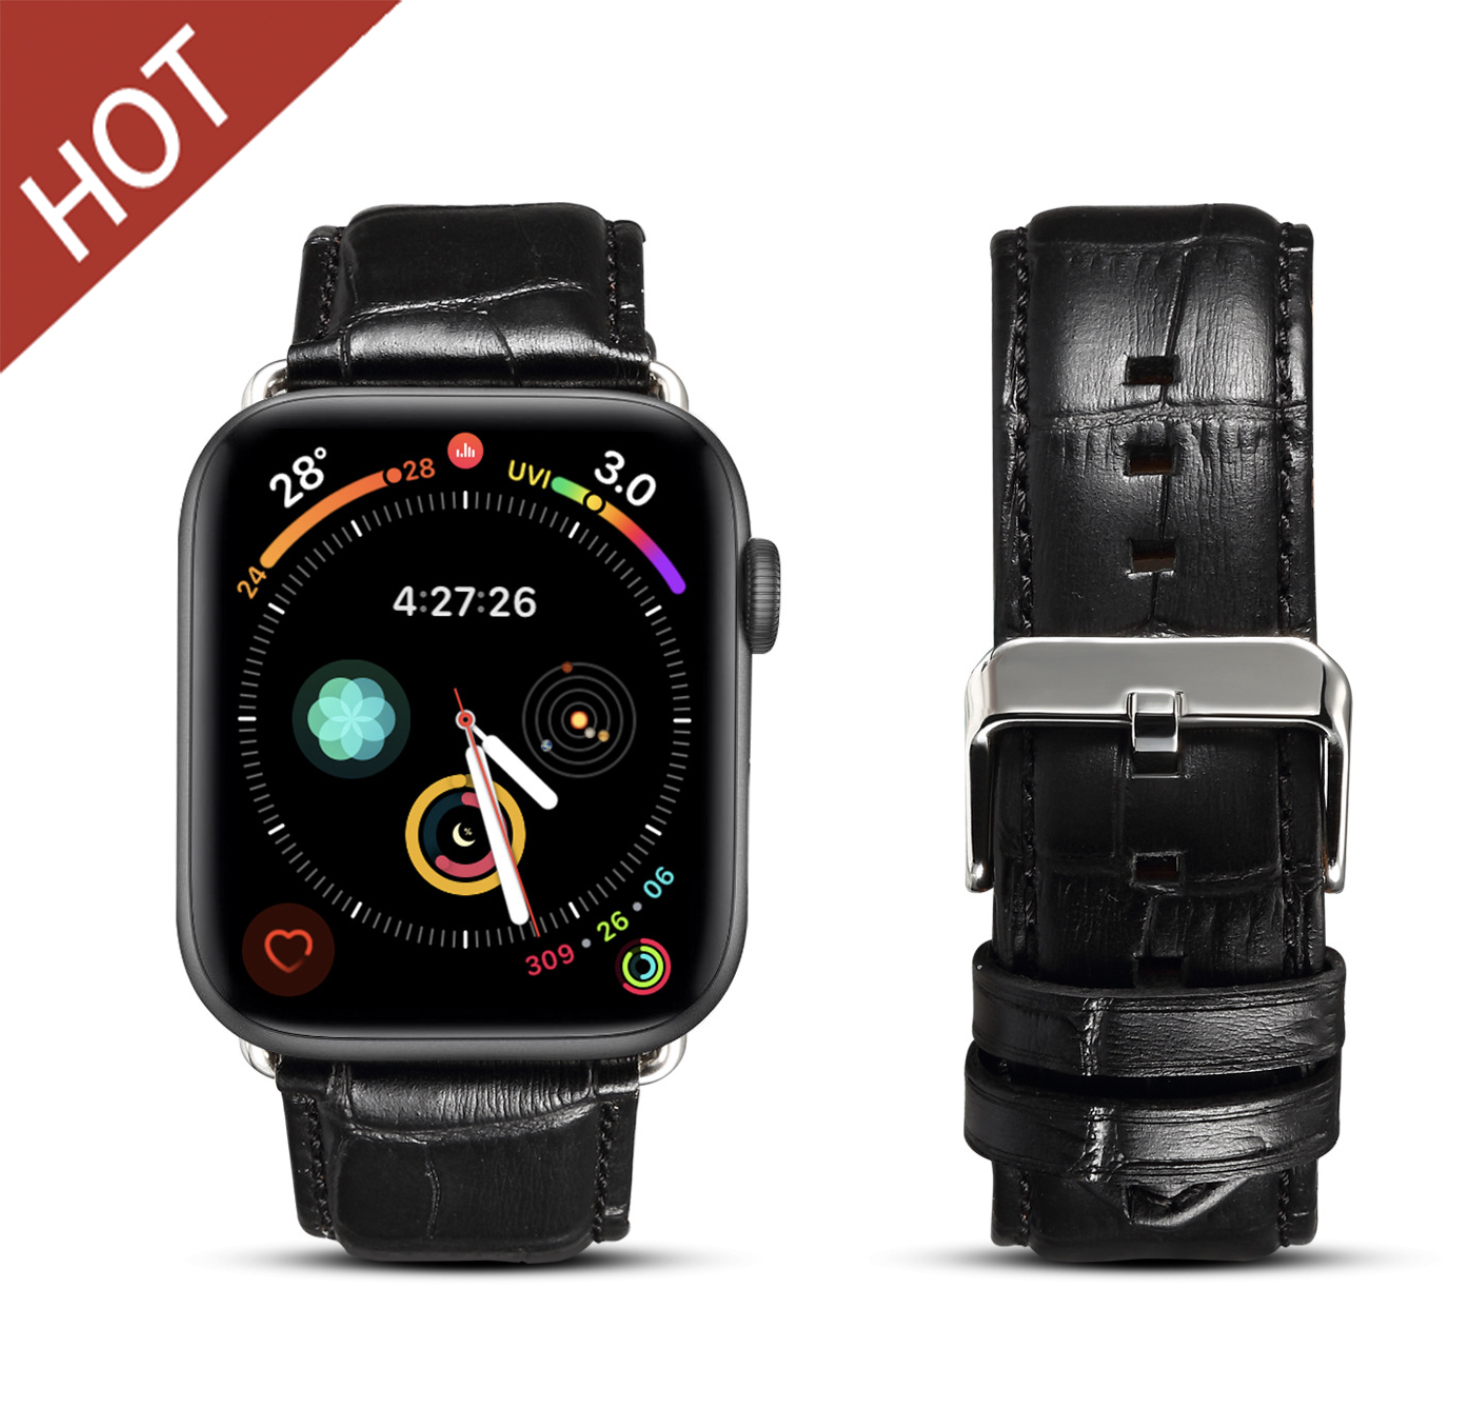 Genuine Leather Band Strap iwatch For Apple Watch Series 5/4/3/2 Leather Watch Band Strap Genuine Leather iwatch Strap Factory